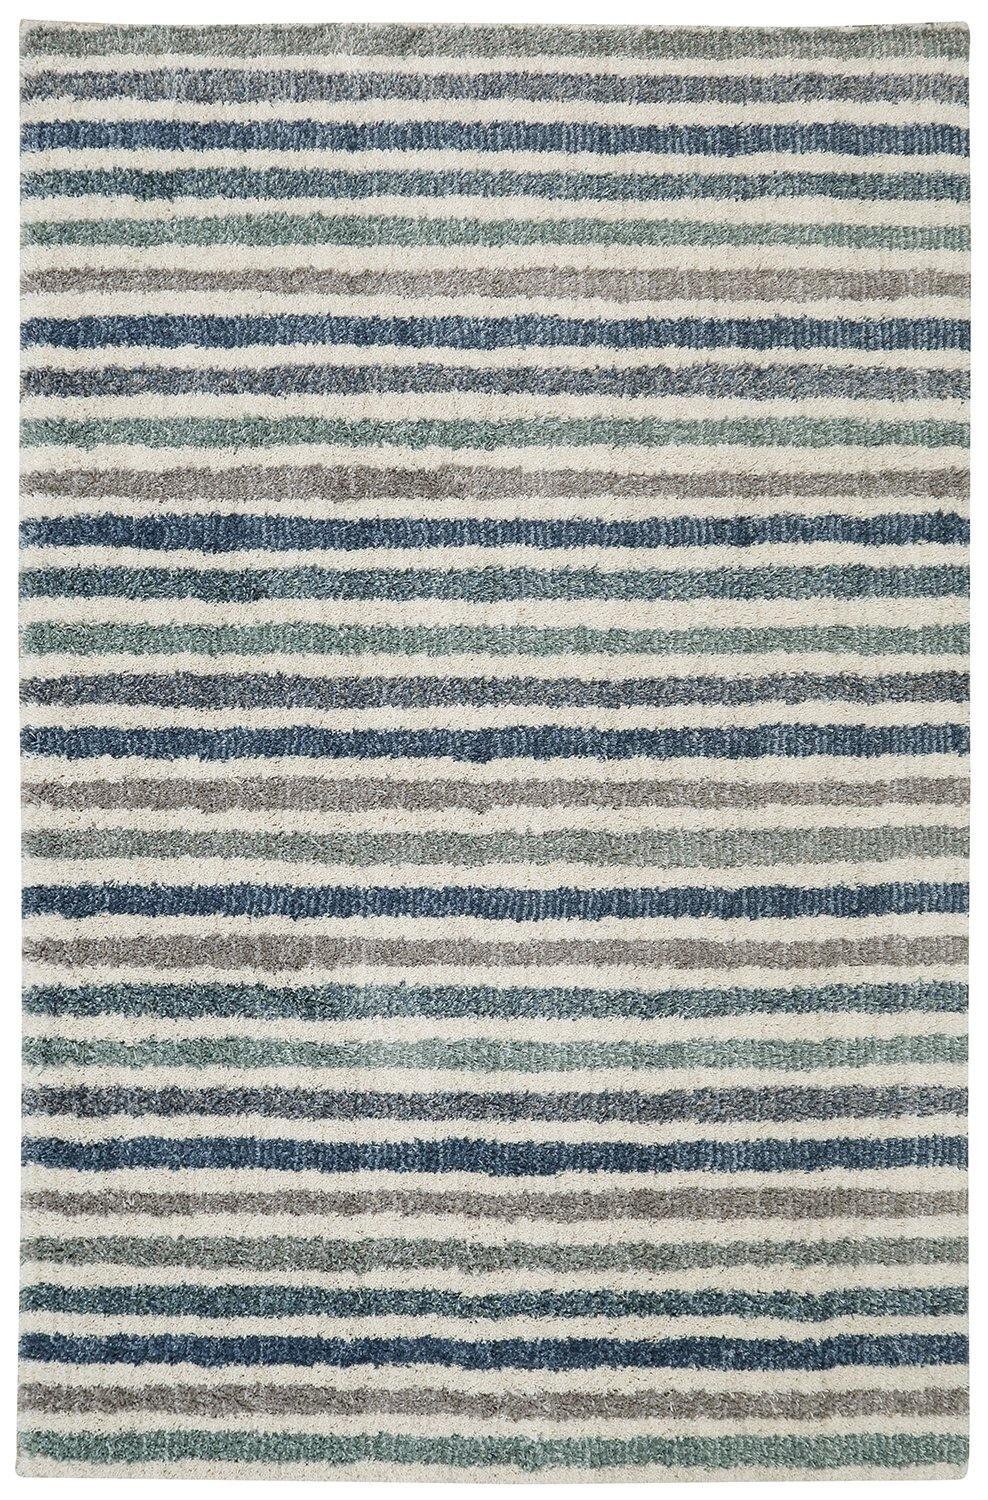 Mohawk Laguna Boardwalk Stripe Blue 90686-50101 Area Rug